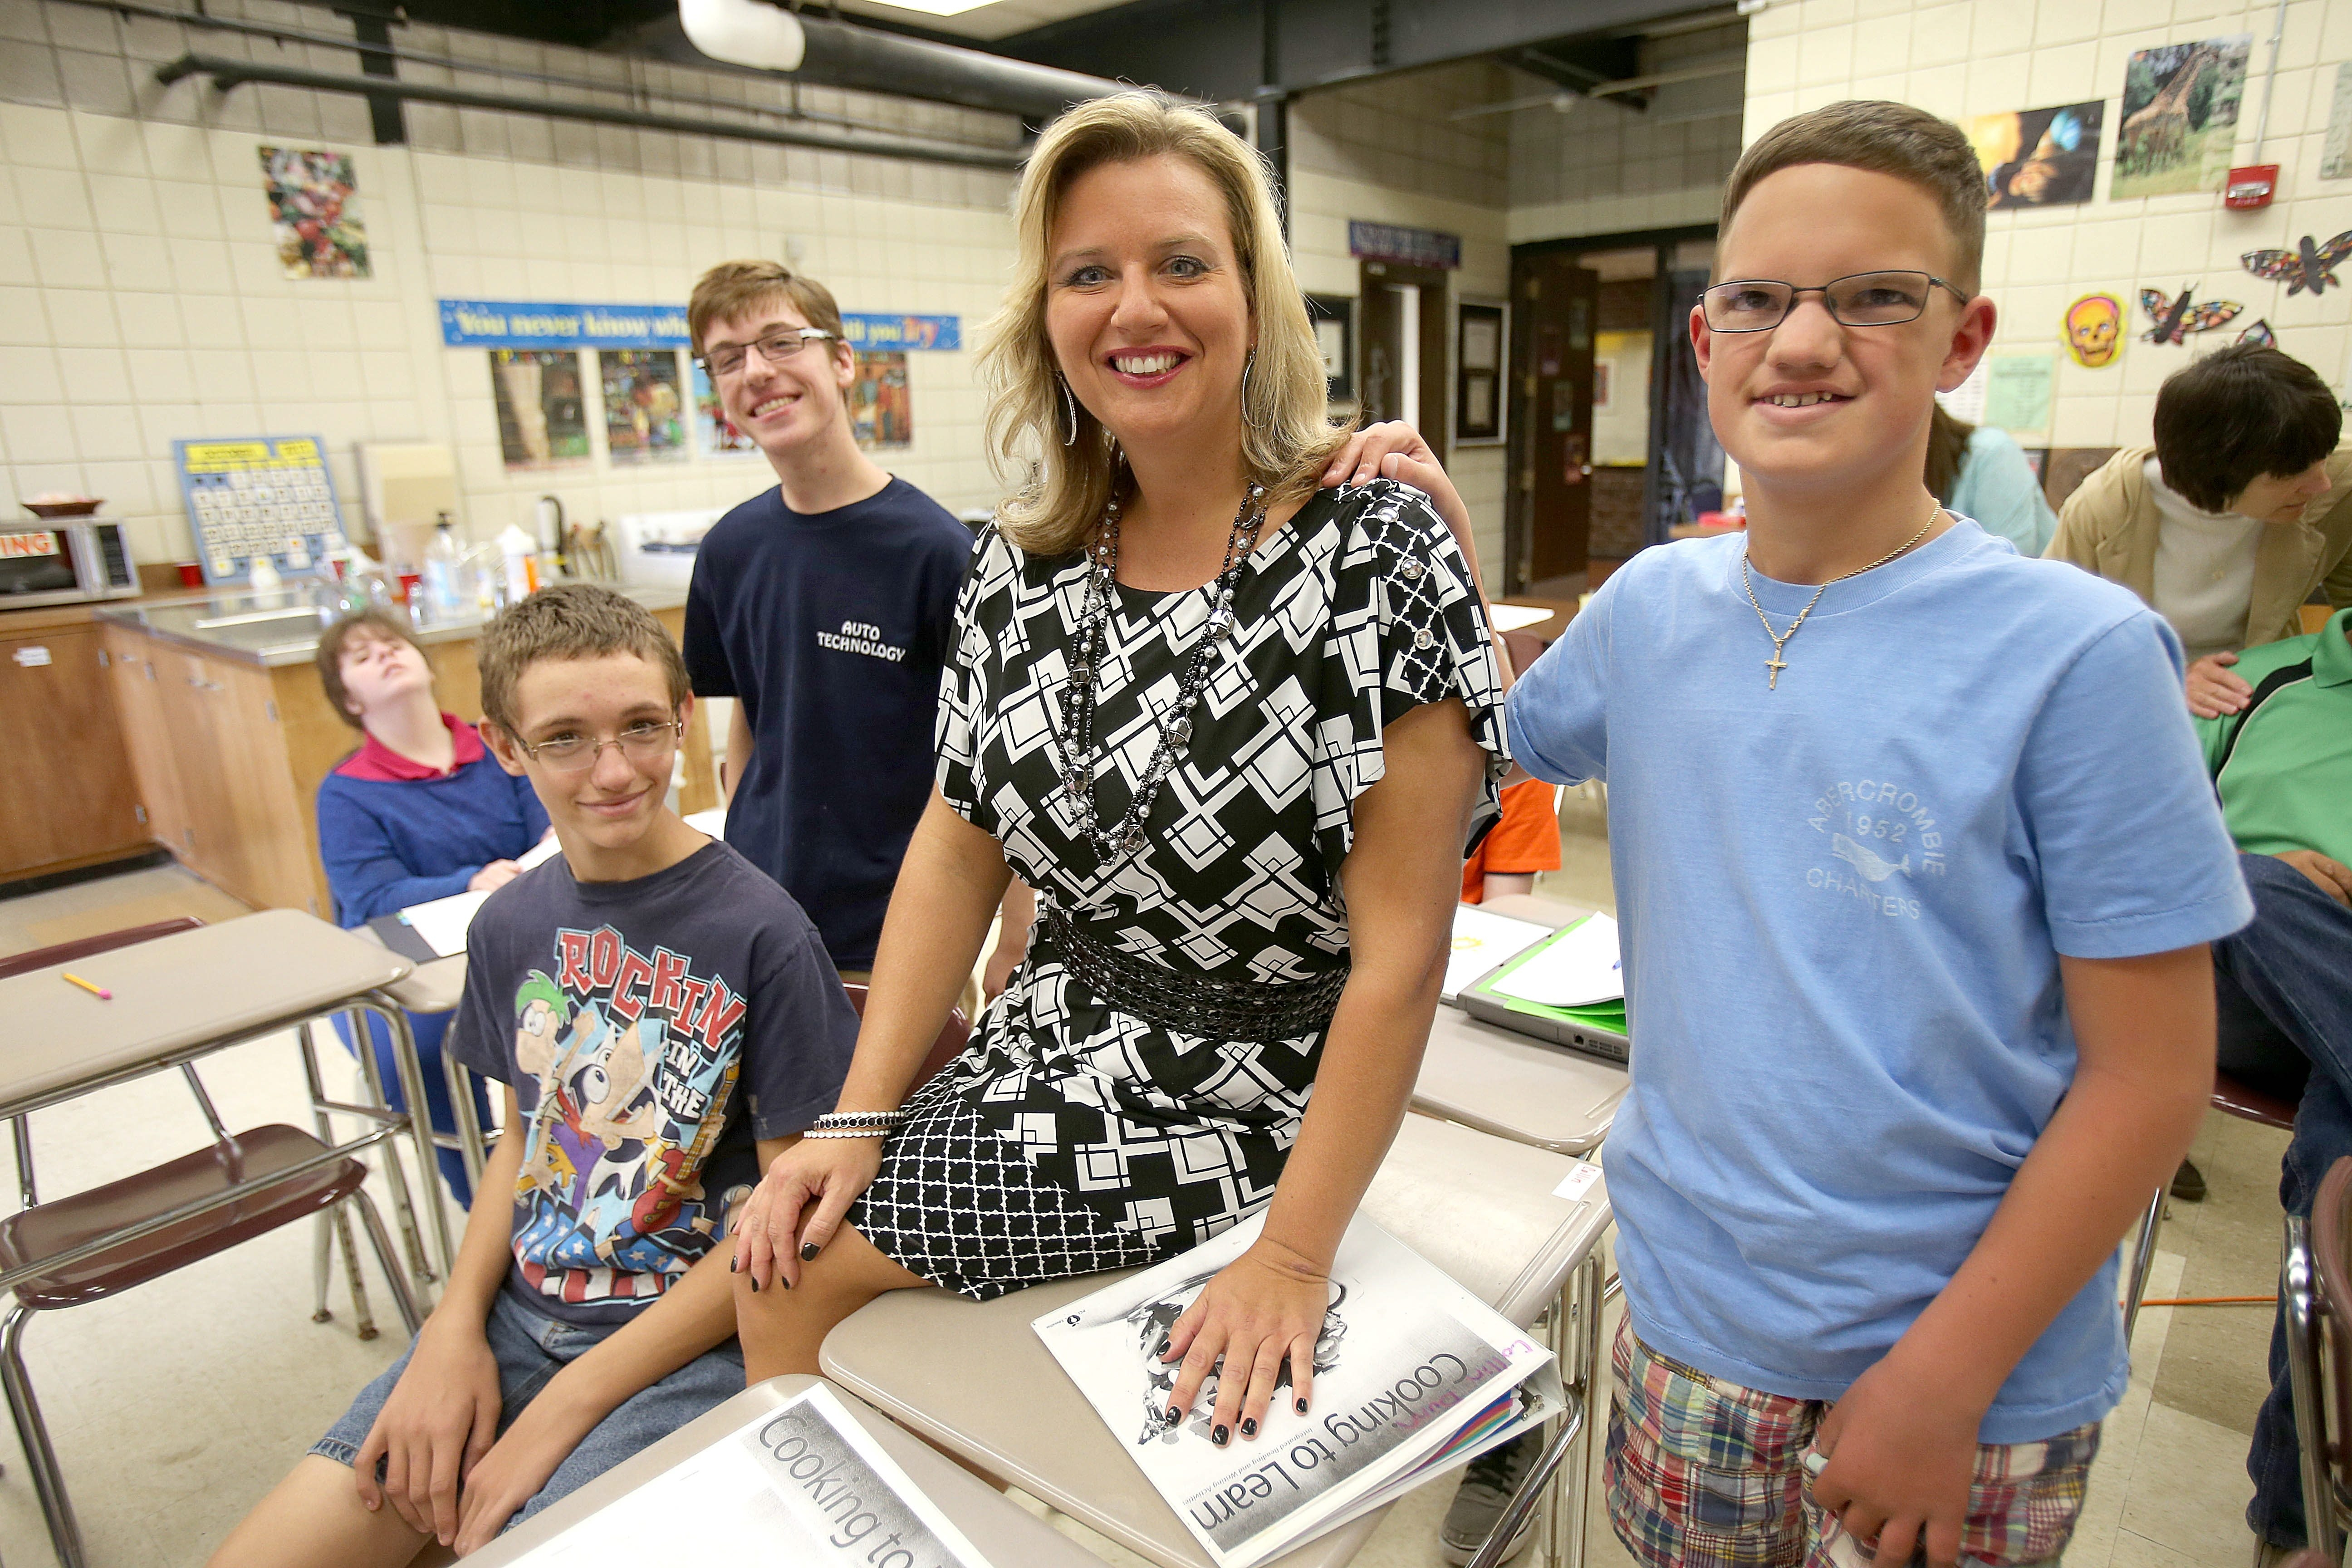 Ashli Skura Dreher, special-education teacher for Lewiston-Porter and State Teacher of the Year, works in high school class with students, from left, Bobby Crewe, 14; Collin Dunn, 19; and Jared Lombardi, 13.